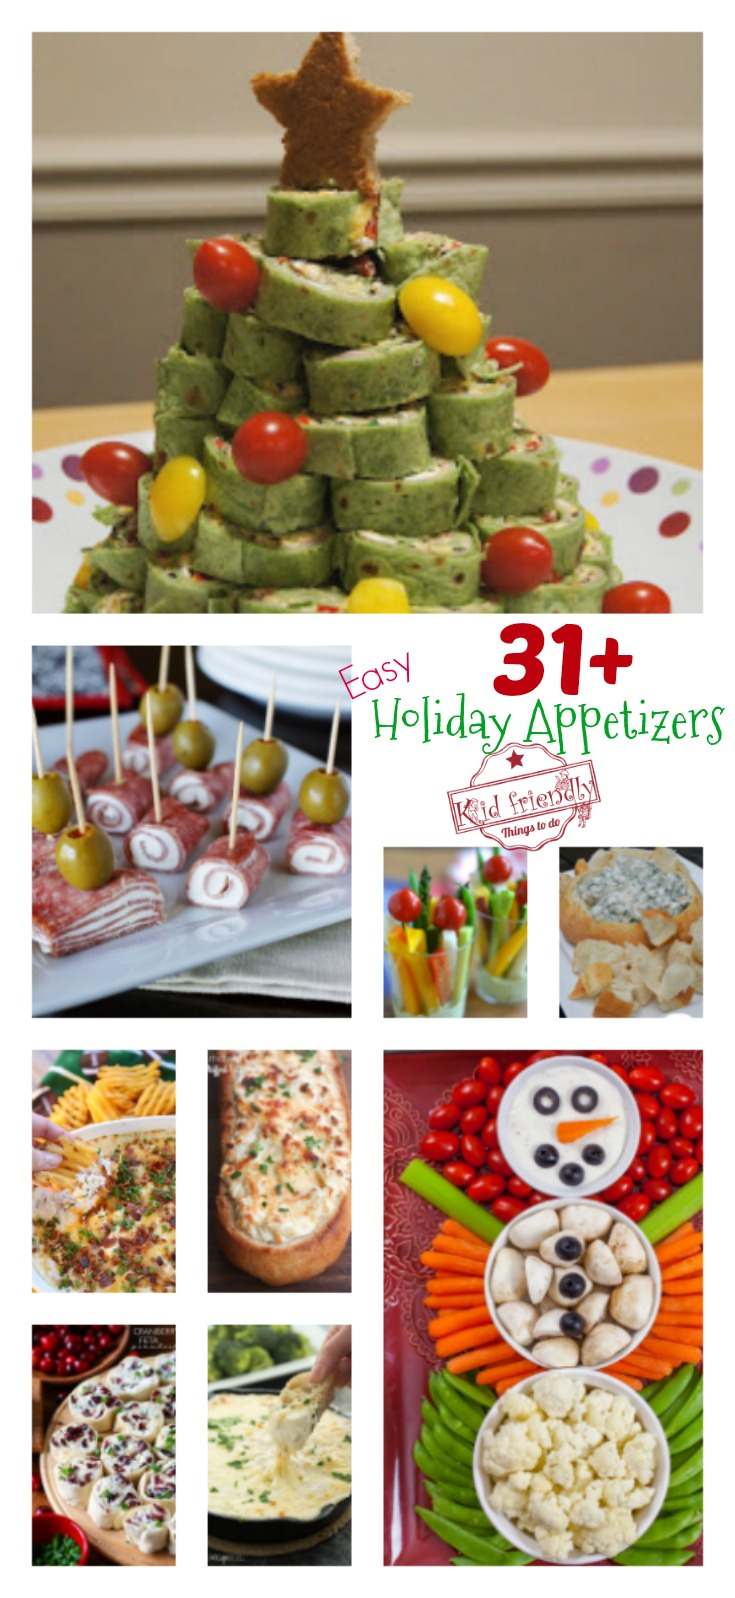 Over 31 Easy Holiday Appetizers to Make for Christmas New Years